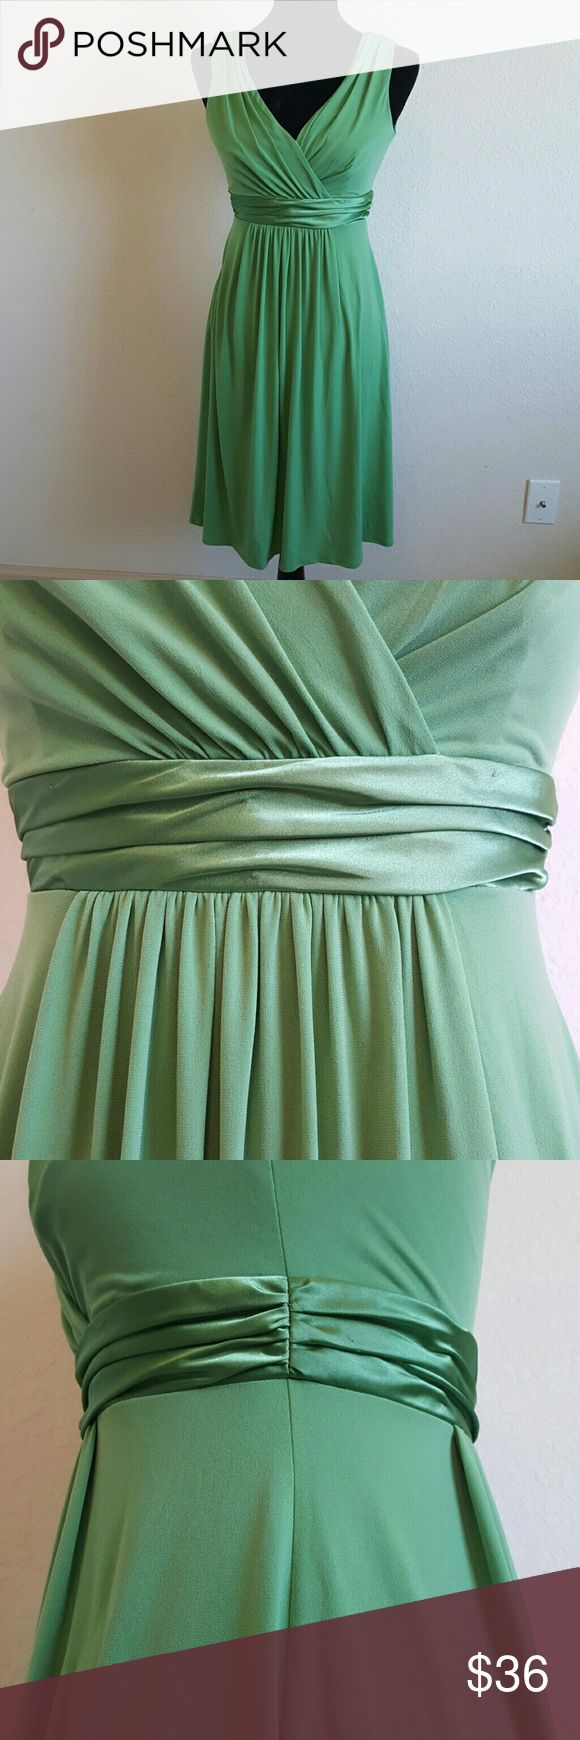 EUC  Short Sleeveless Jersey Bridesmaid Dress Short Sleeveless Jersey Bridesmaid Dress with Charmeuse Waist Band ?  Size 2 Excellent Pre-owned condition! Clover green *  Style: E44239 Comfortable and stylish, this jersey dress is a great option for your bridemaids and has plenty of wear-again potential. Sleeveless tank bodice features elegant V-neckline. Charmeuse trim highlights the waist. Jersey fabric flows gracefully for a look that is soft and chic. Back zip. Imported polyester blend…